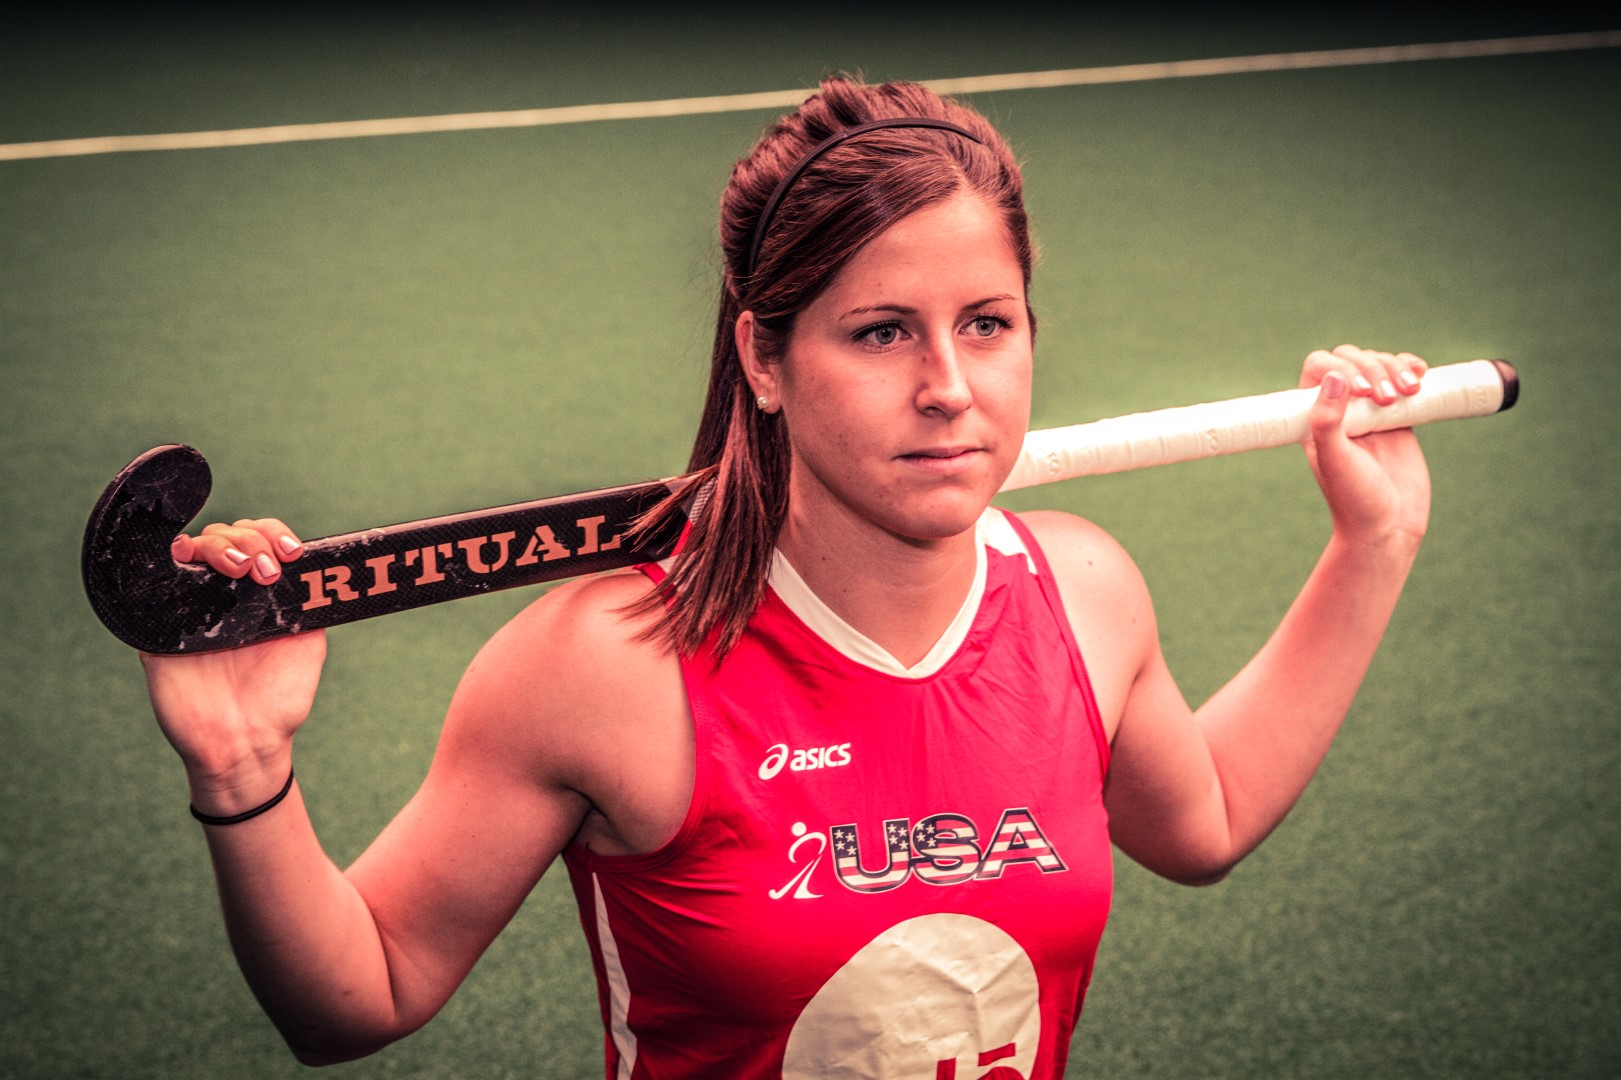 Katie has been an endorser of Ritual Hockey since graduation from Princeton.